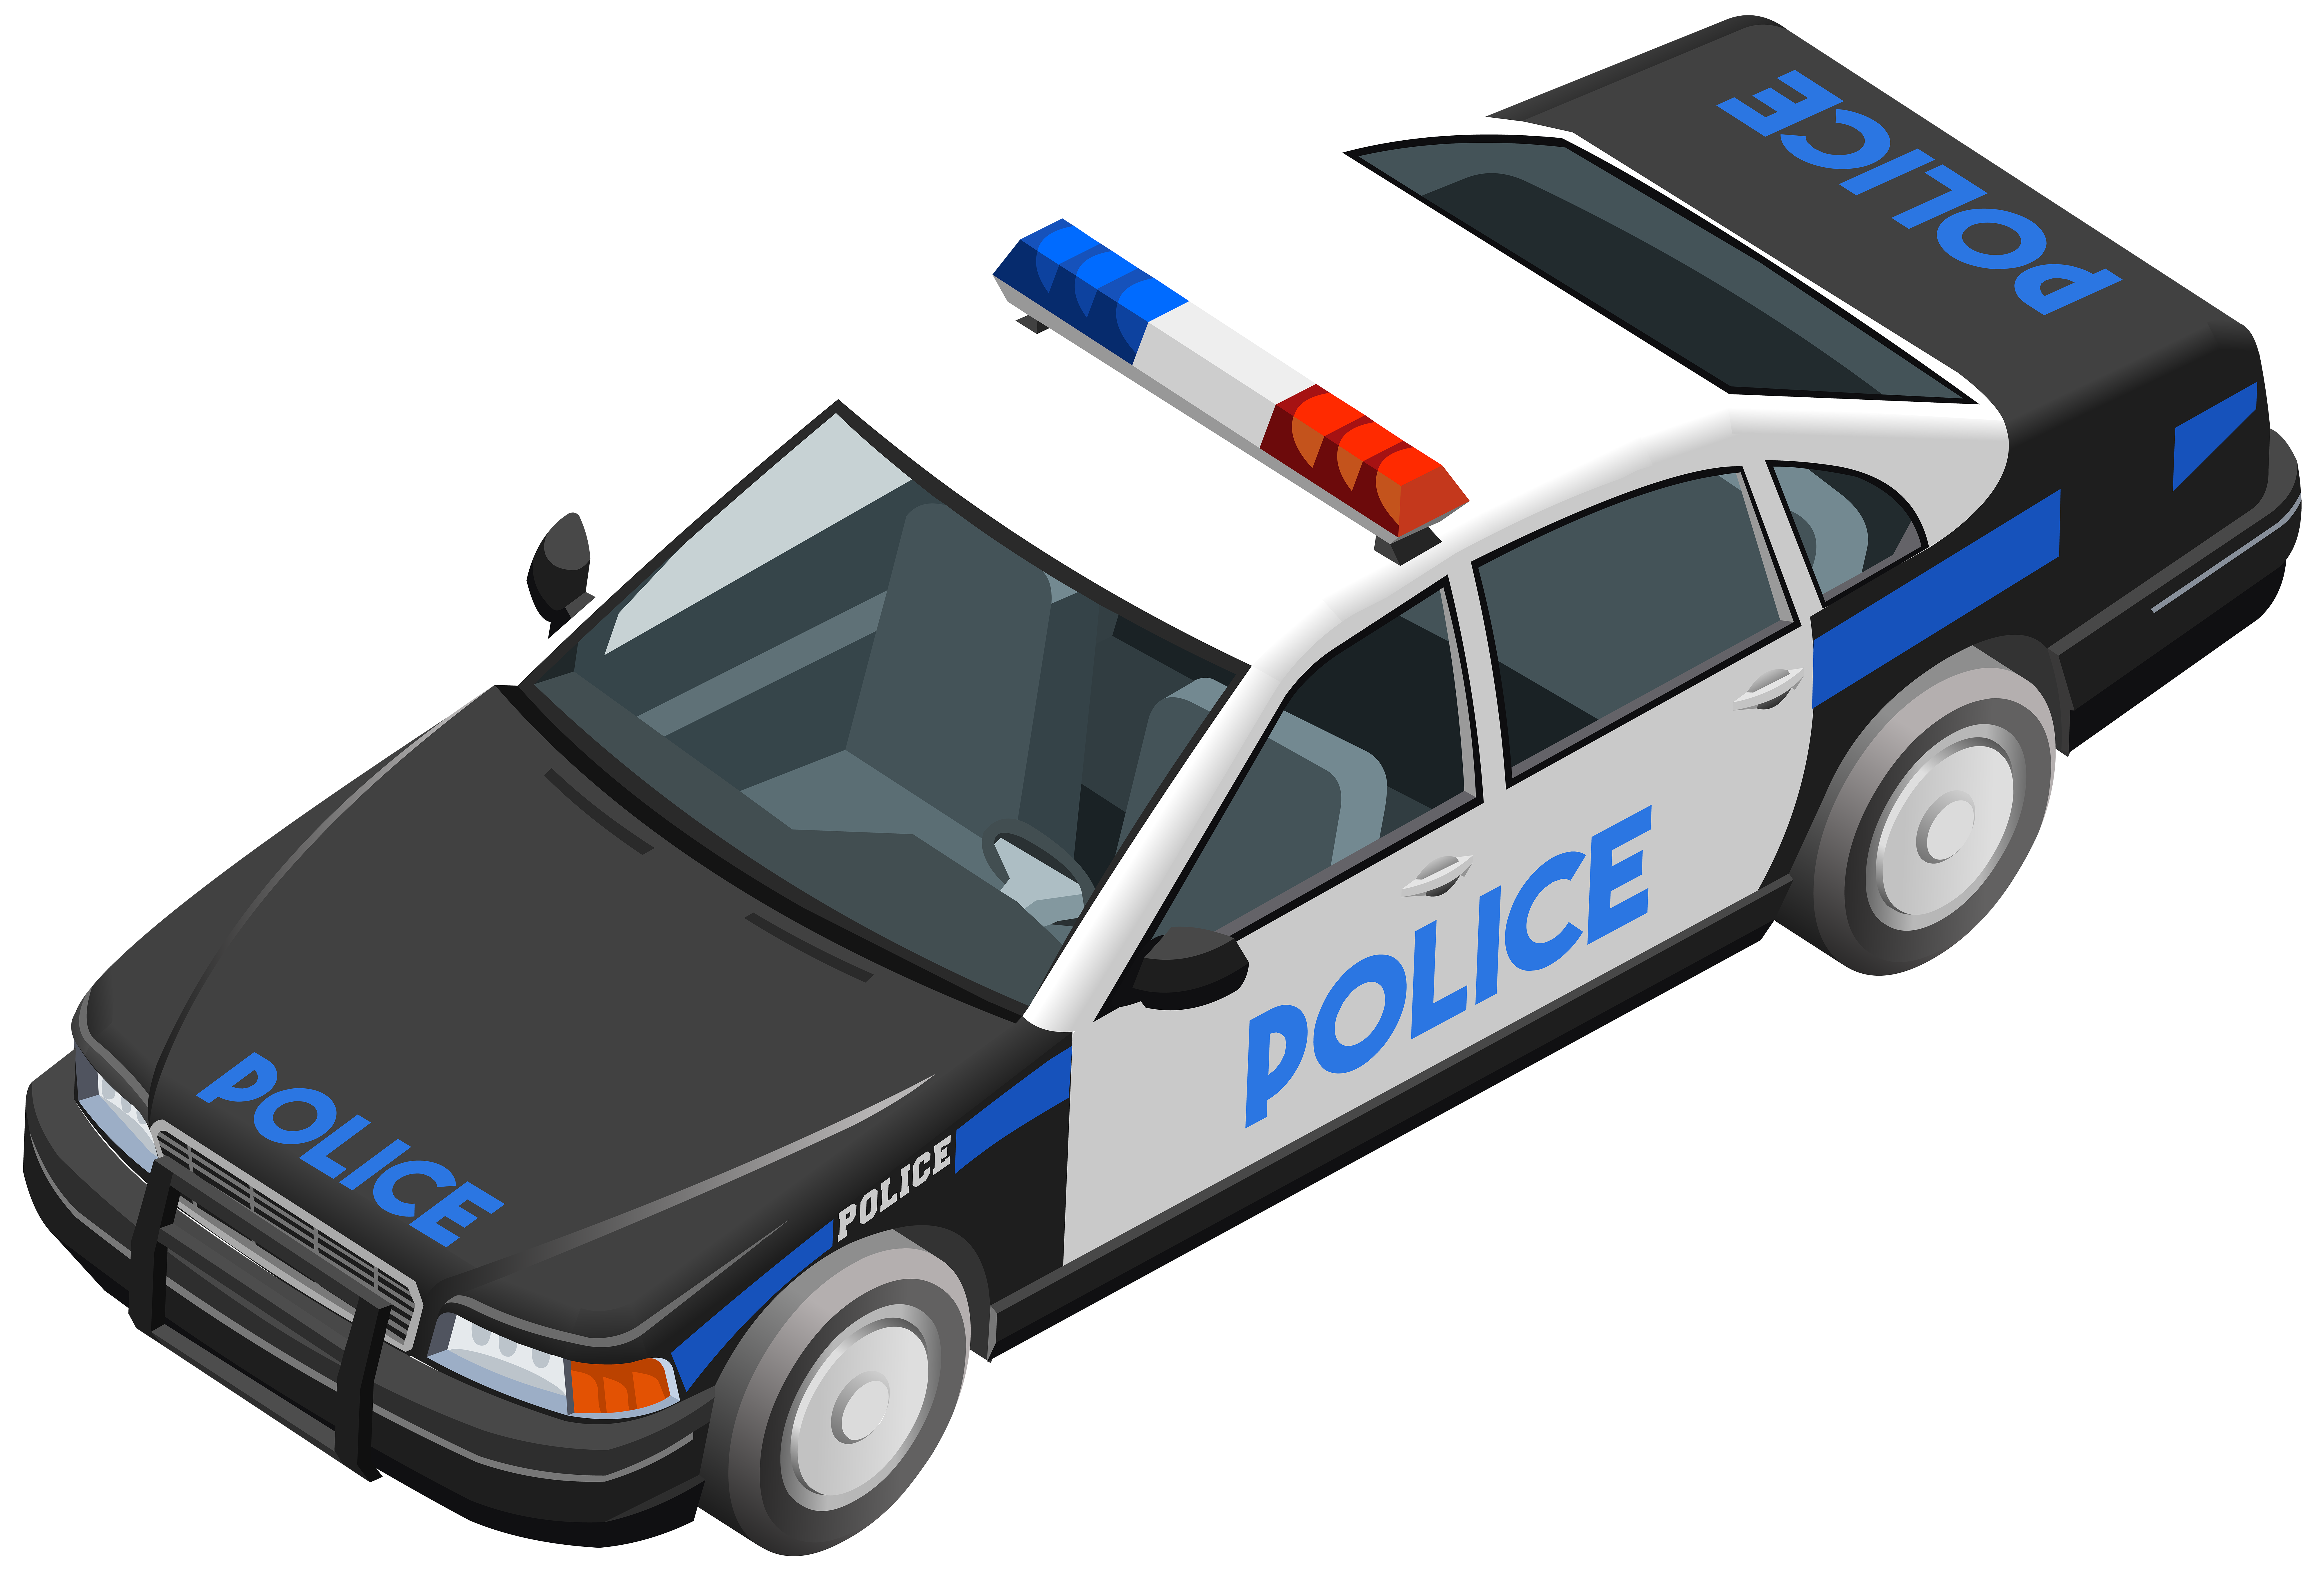 Ford crown victoria clipart image royalty free download Car Photography Clip art - police car 8000*5412 transprent Png Free ... image royalty free download